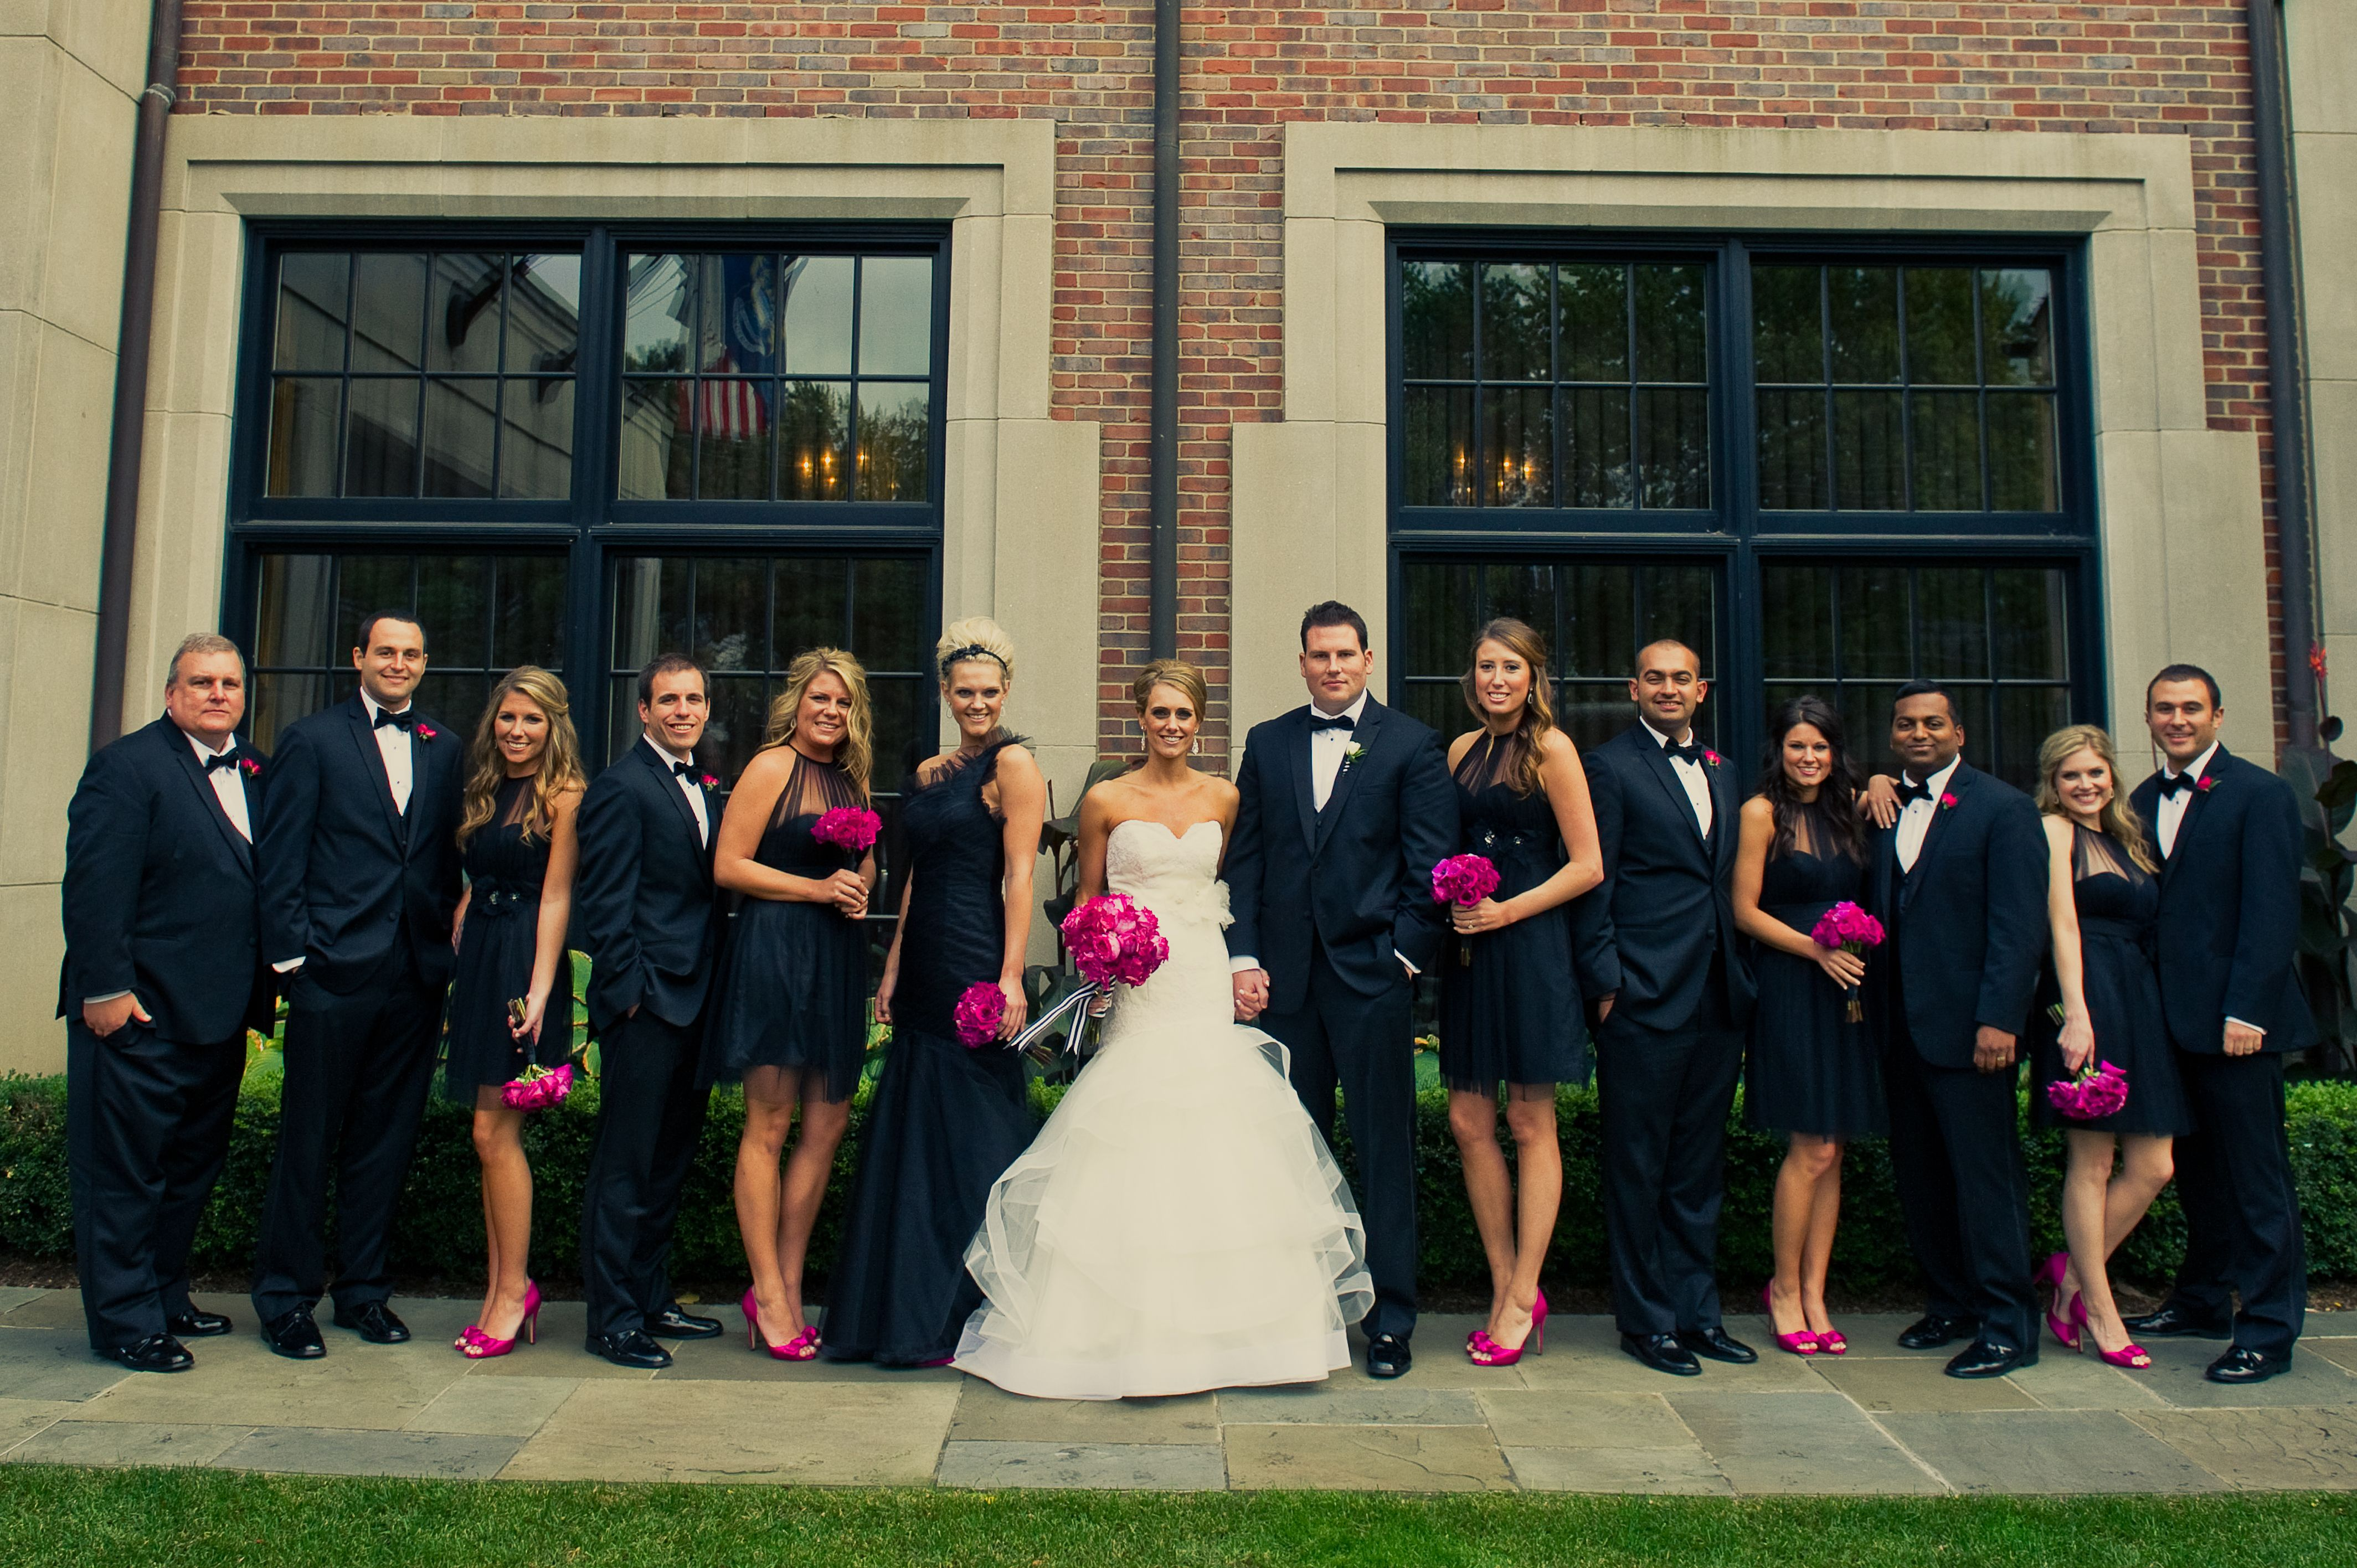 The Wedding Party • Everyone oozes confident NYC sophistication in ...